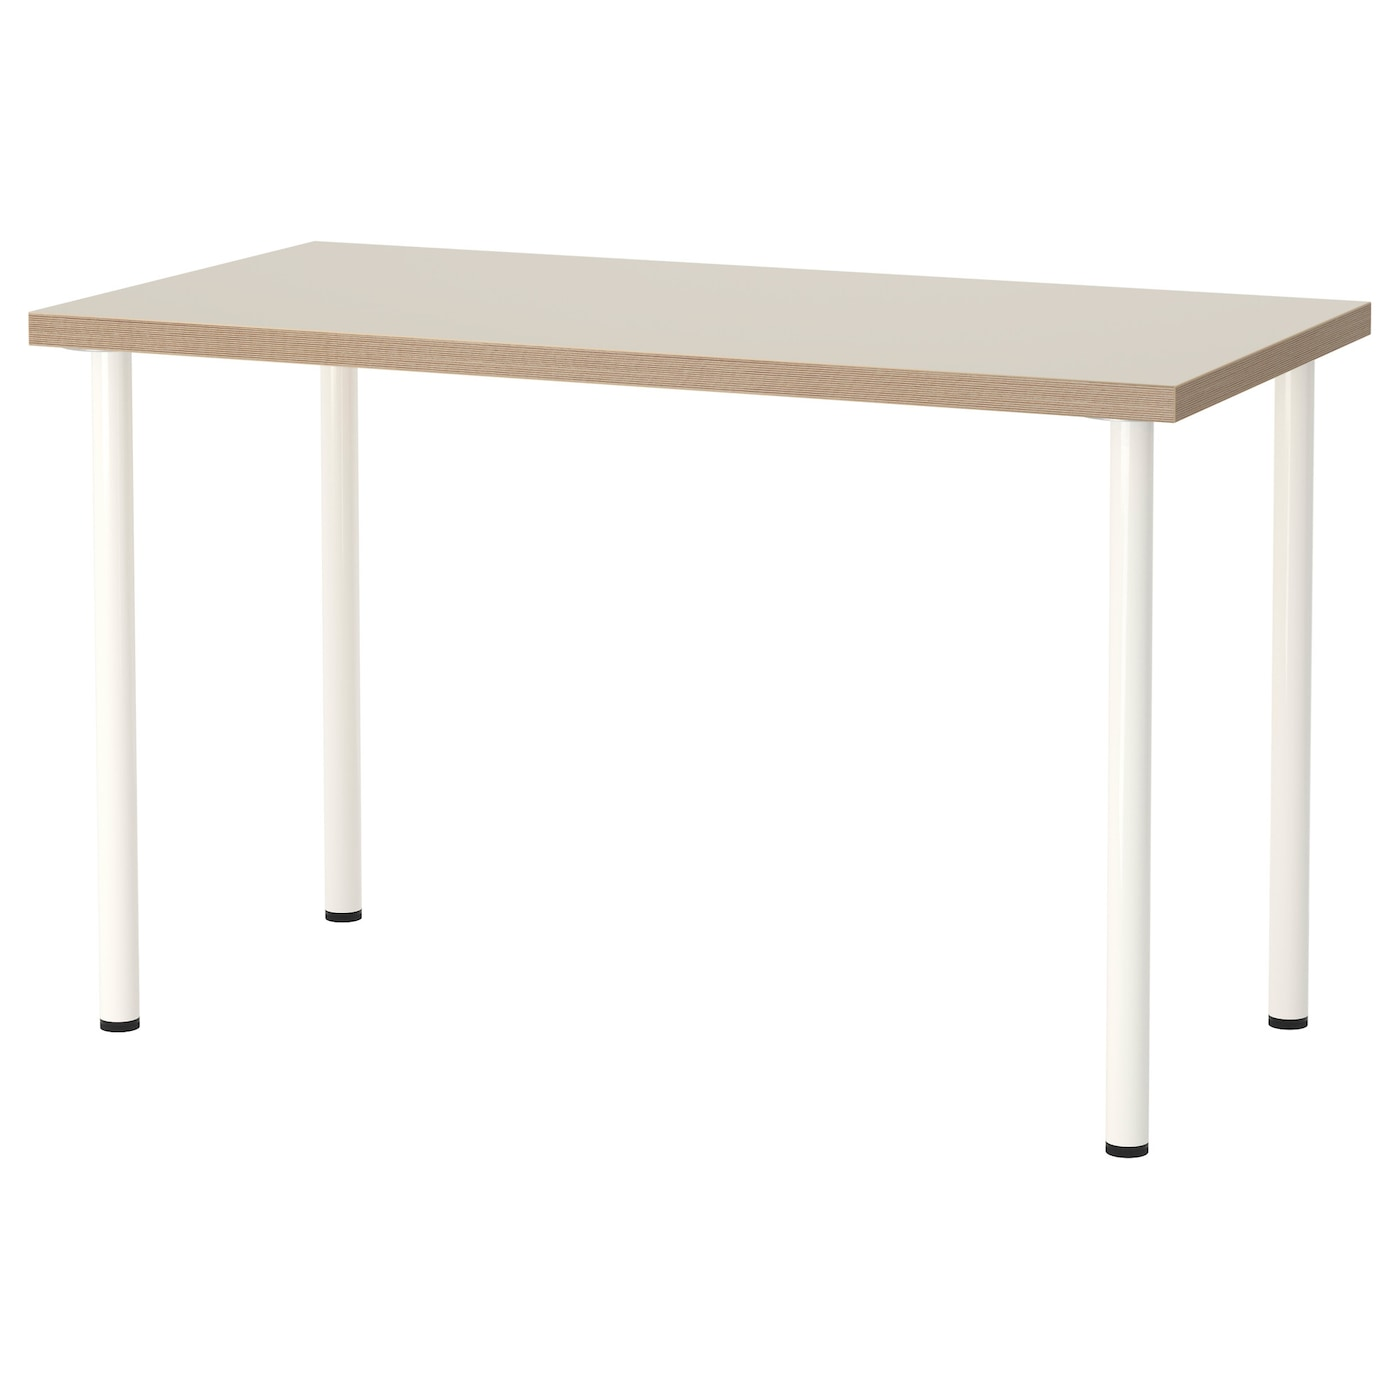 Adils linnmon table beige white 120 x 60 cm ikea - Mesa linnmon adils ...